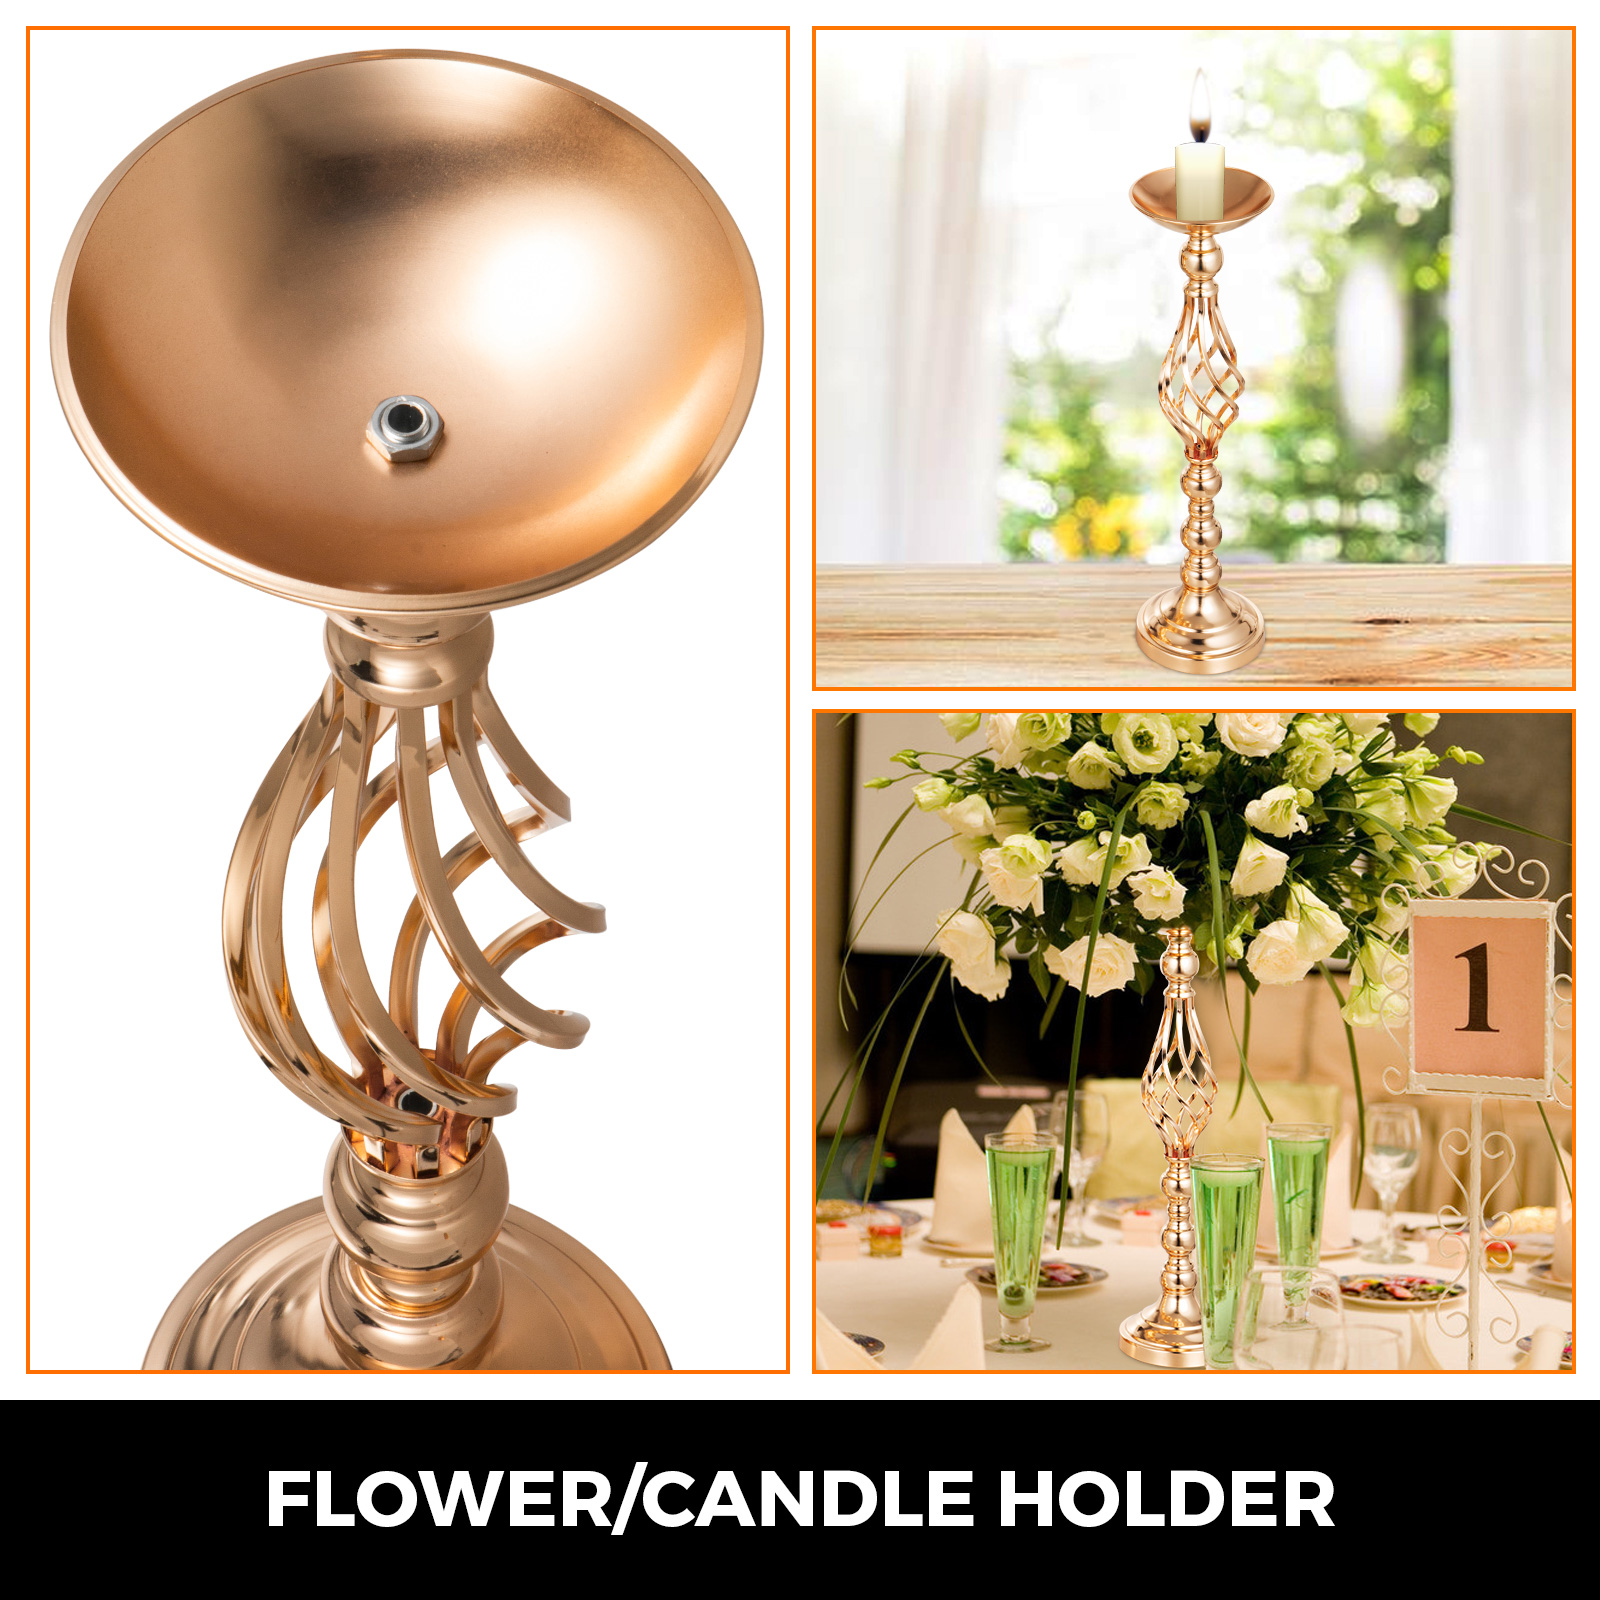 Flower-Rack-for-Wedding-Metal-Candle-Stand-4-11pcs-Centerpiece-Flower-Vase thumbnail 99